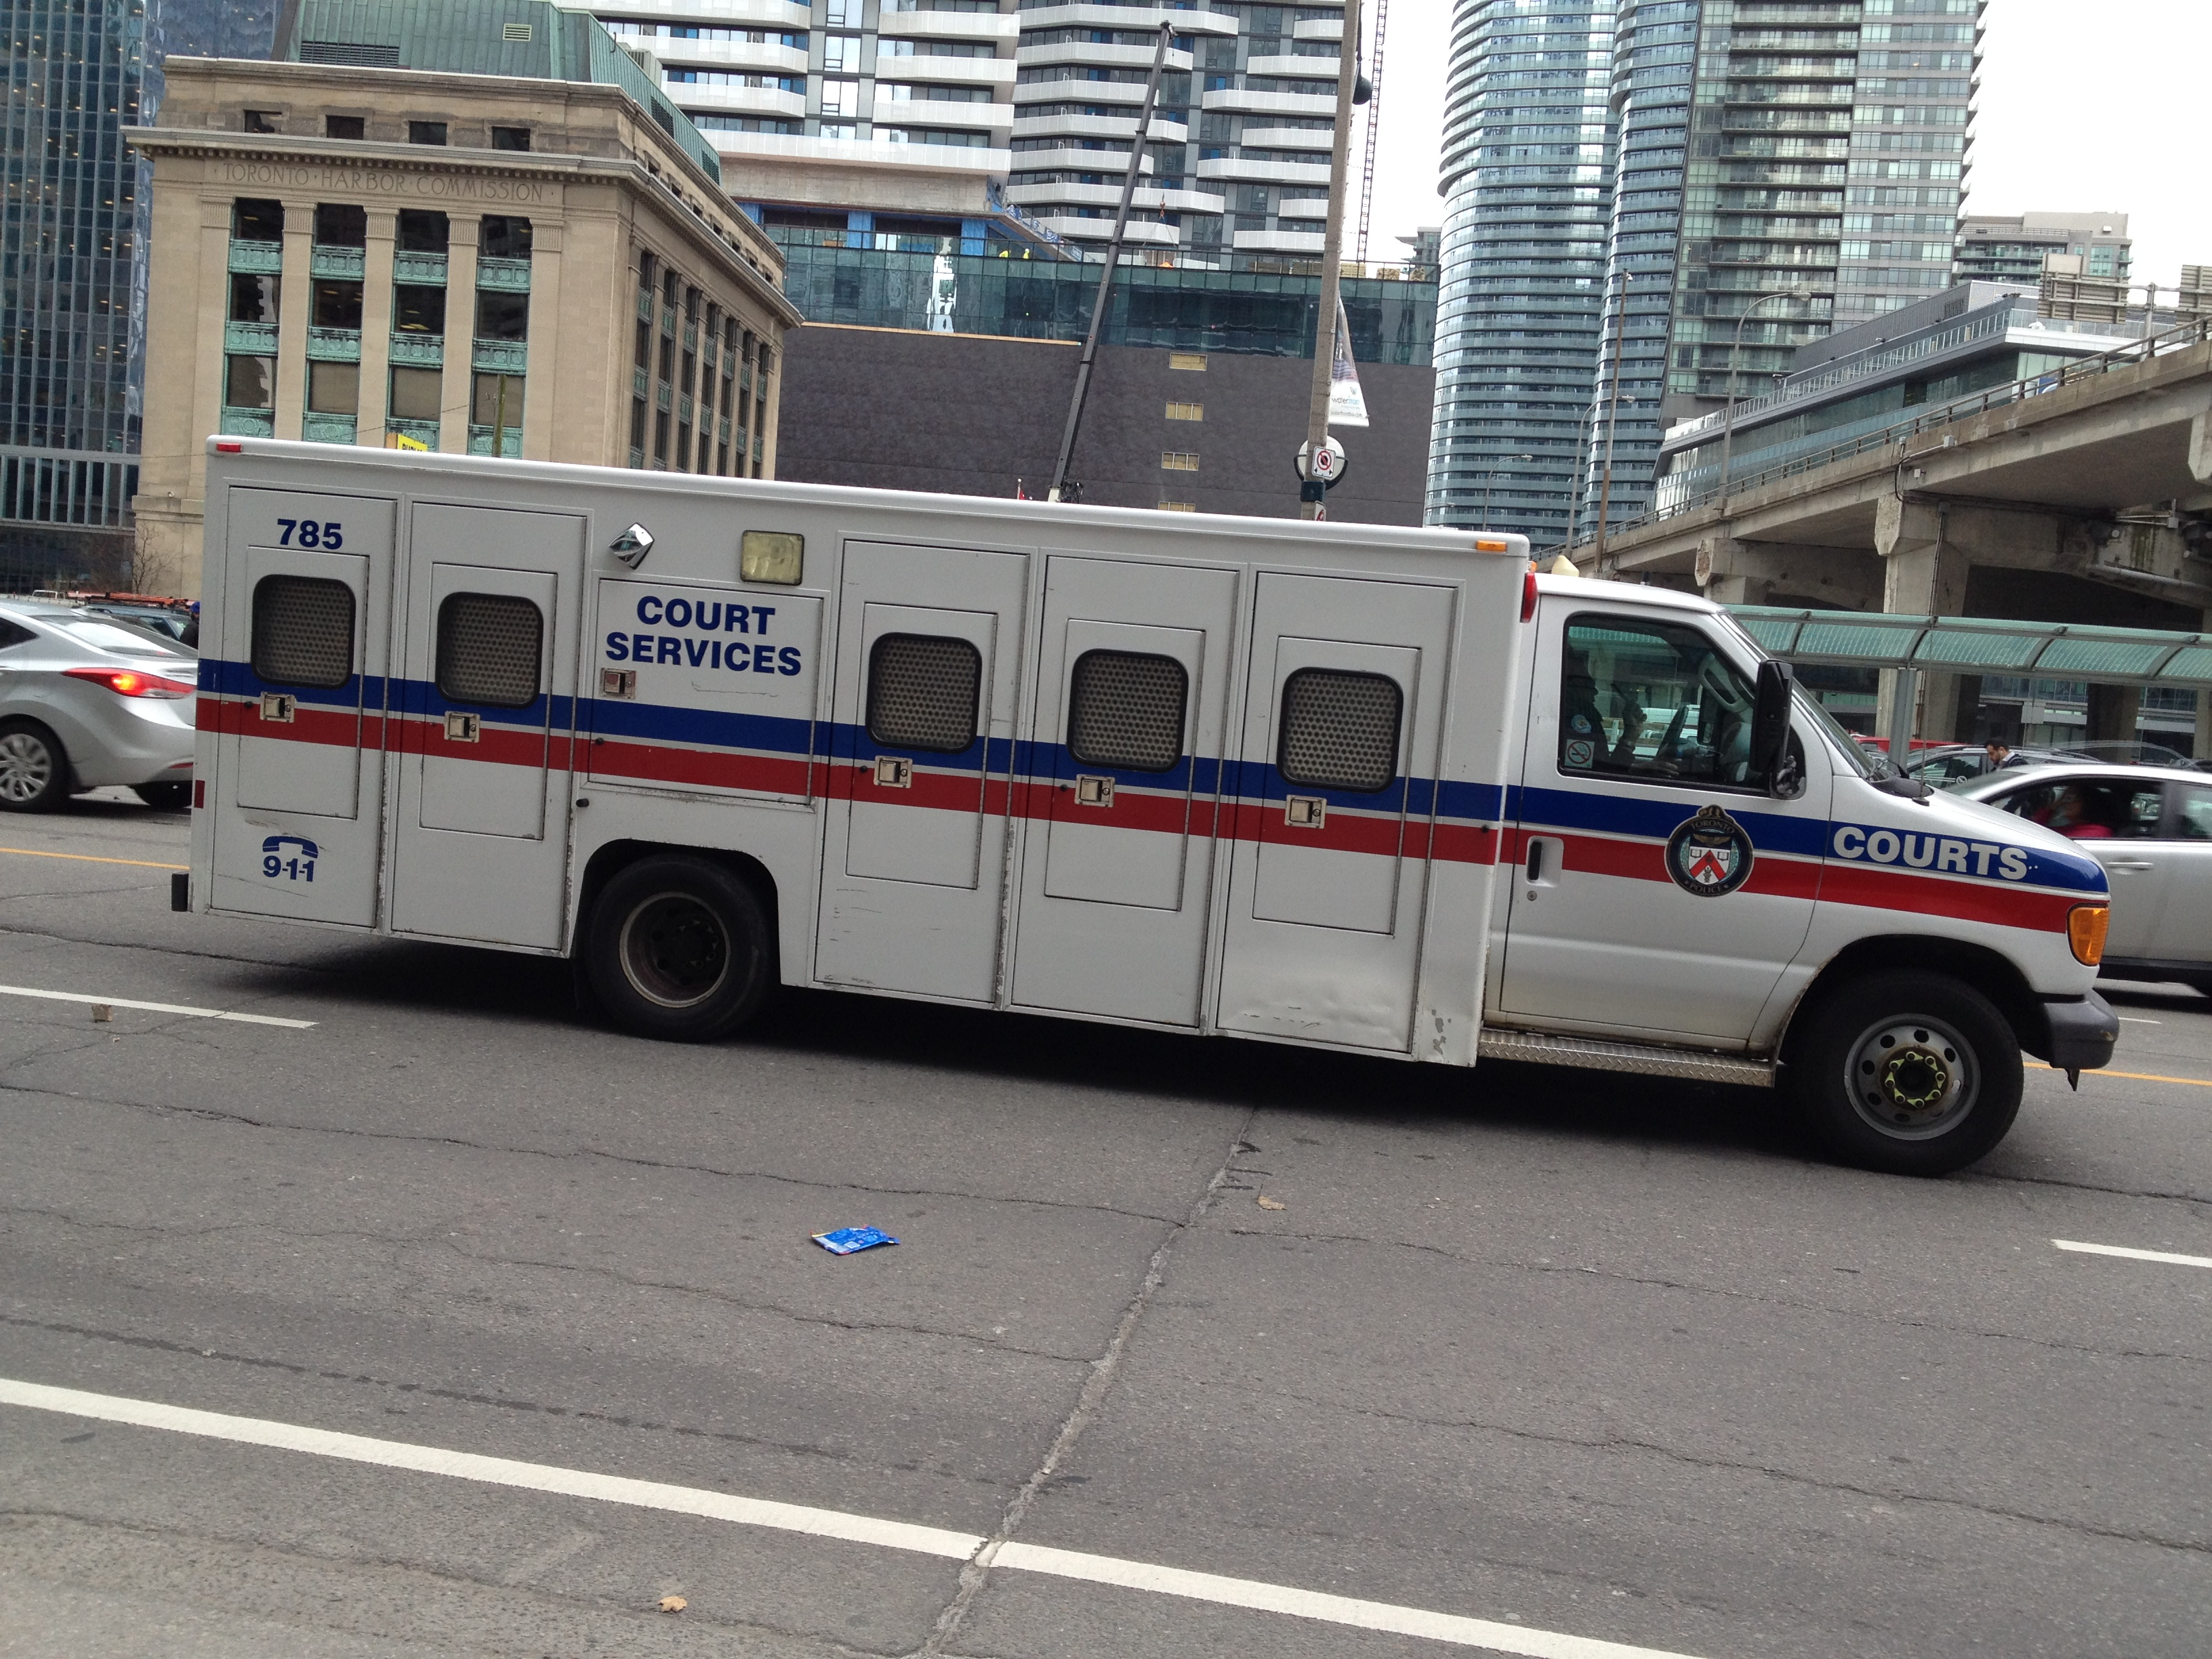 Toronto Police Service Prisoner Transport Van Anyone Know The Model